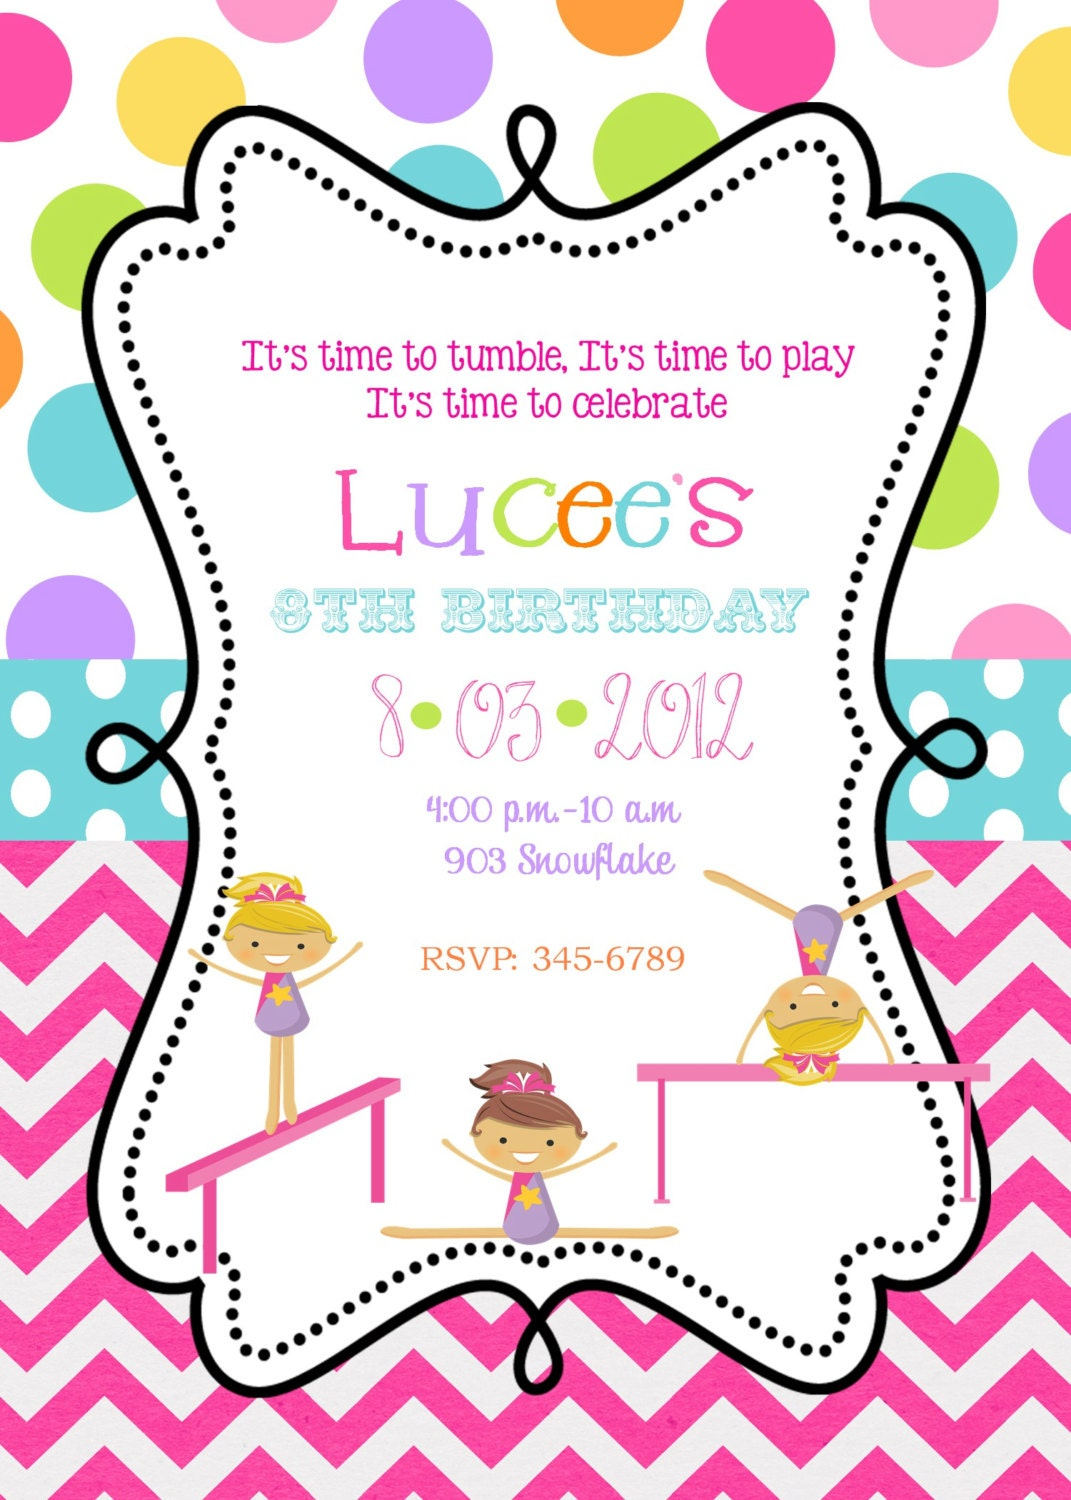 Gymnastic Party Invites for luxury invitations example